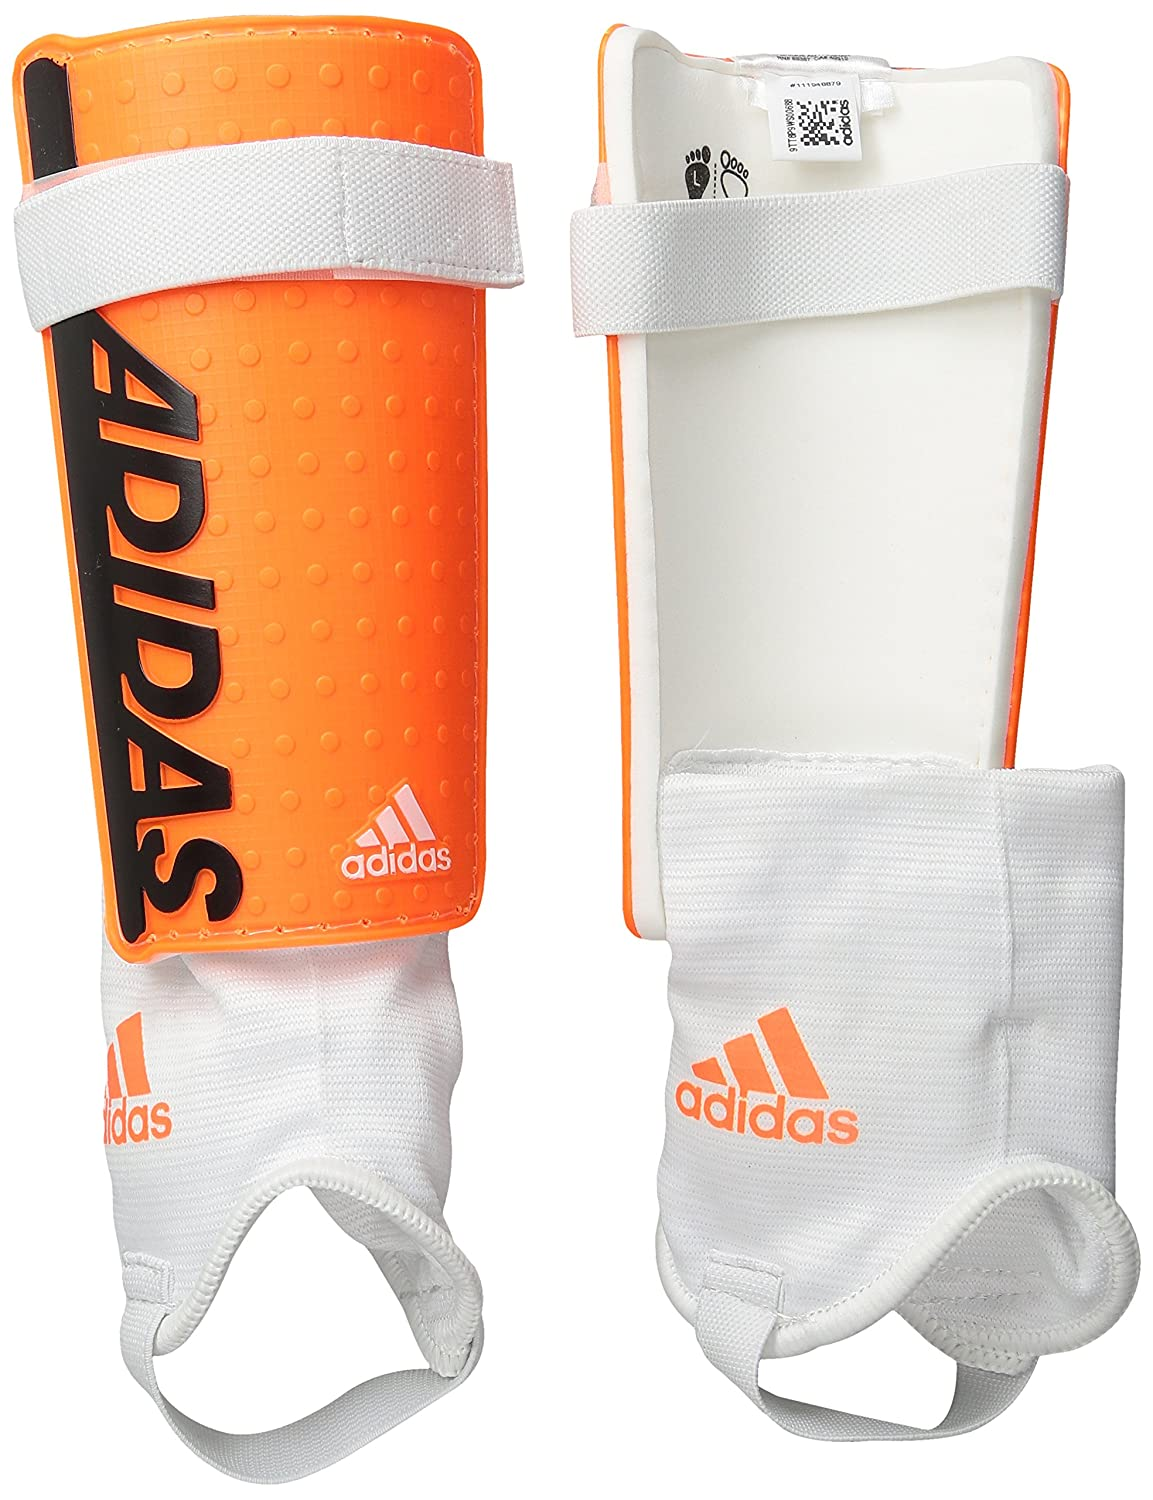 340d63c9dfa4 Shin Guards   Online Shopping for Clothing